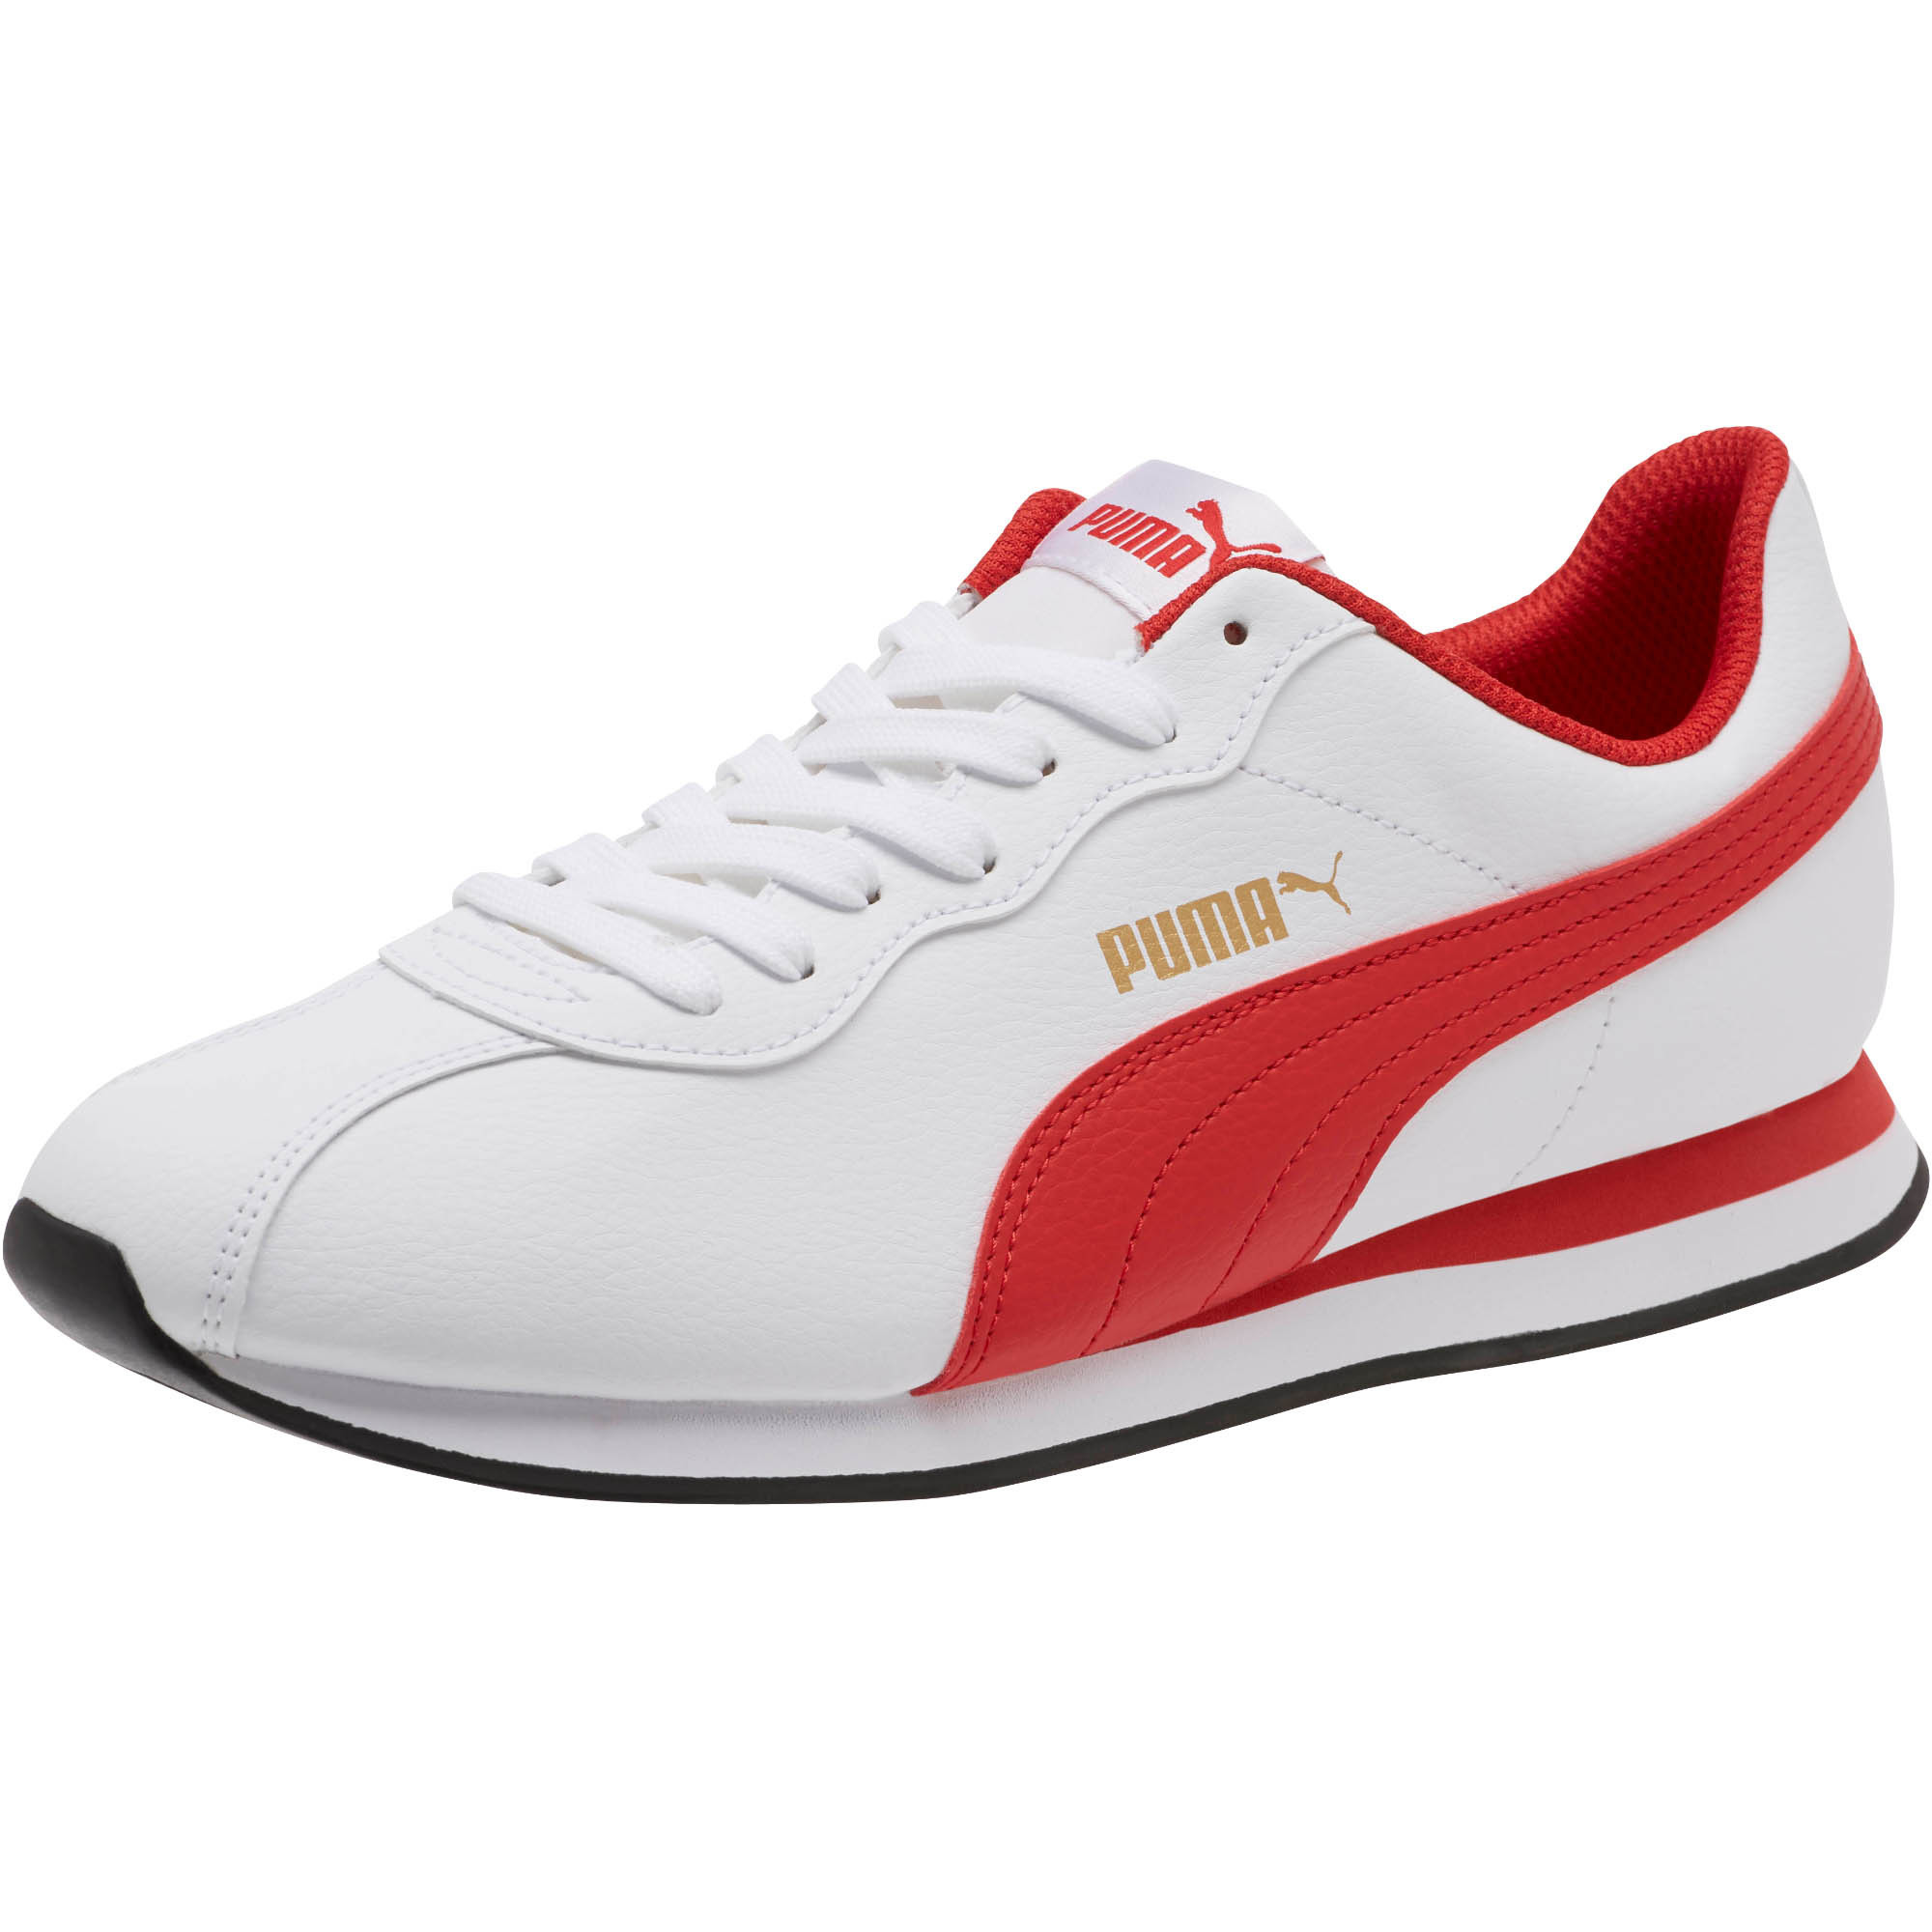 PUMA-Turin-II-Men-039-s-Sneakers-Men-Shoe-Basics thumbnail 30